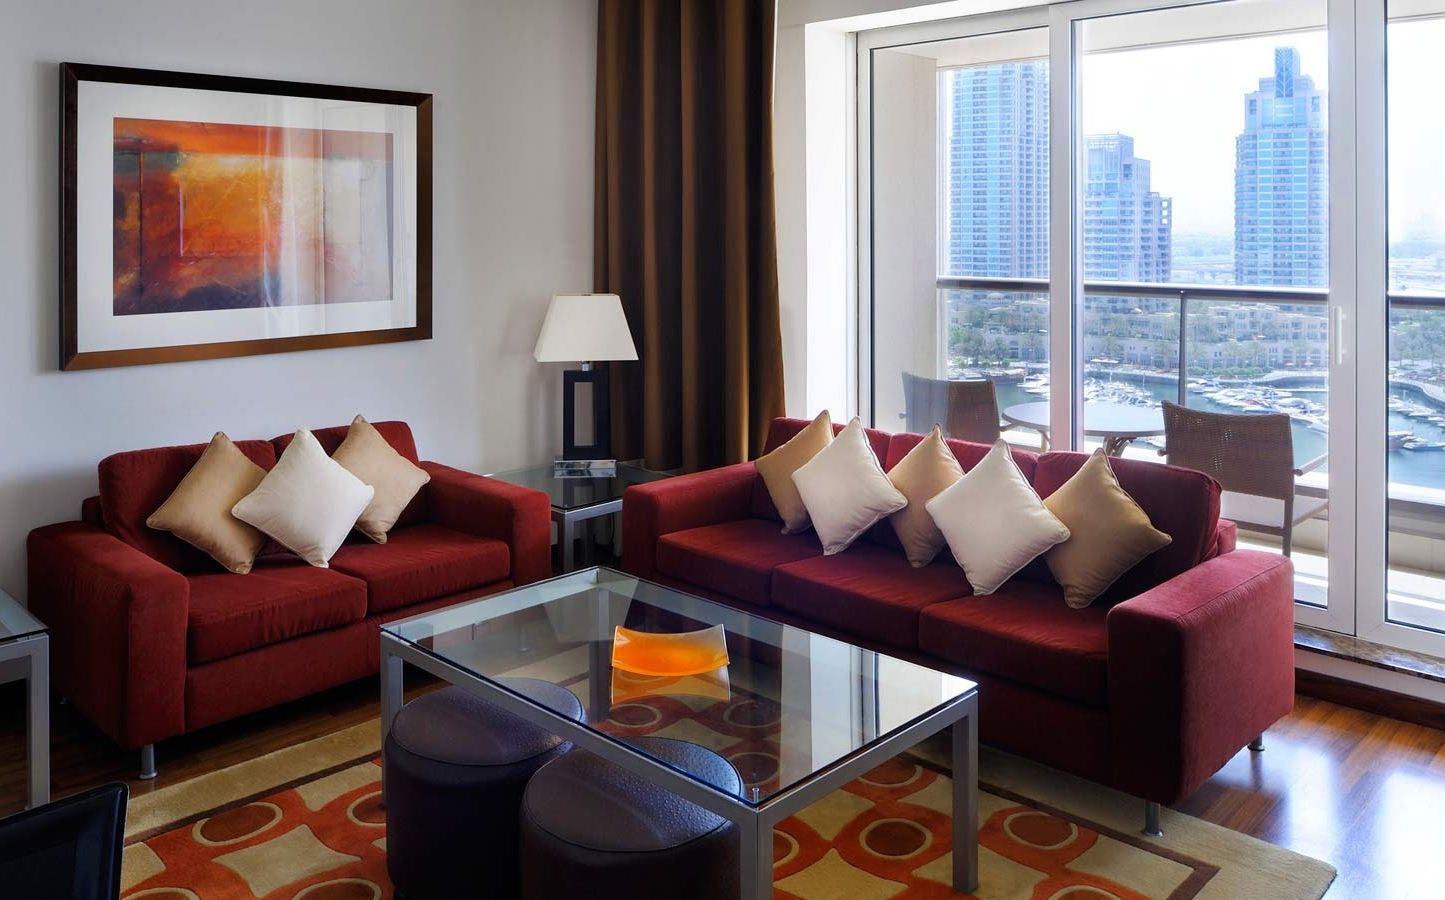 grosvenor house dubai 2 bedroom furnished serviced apartments